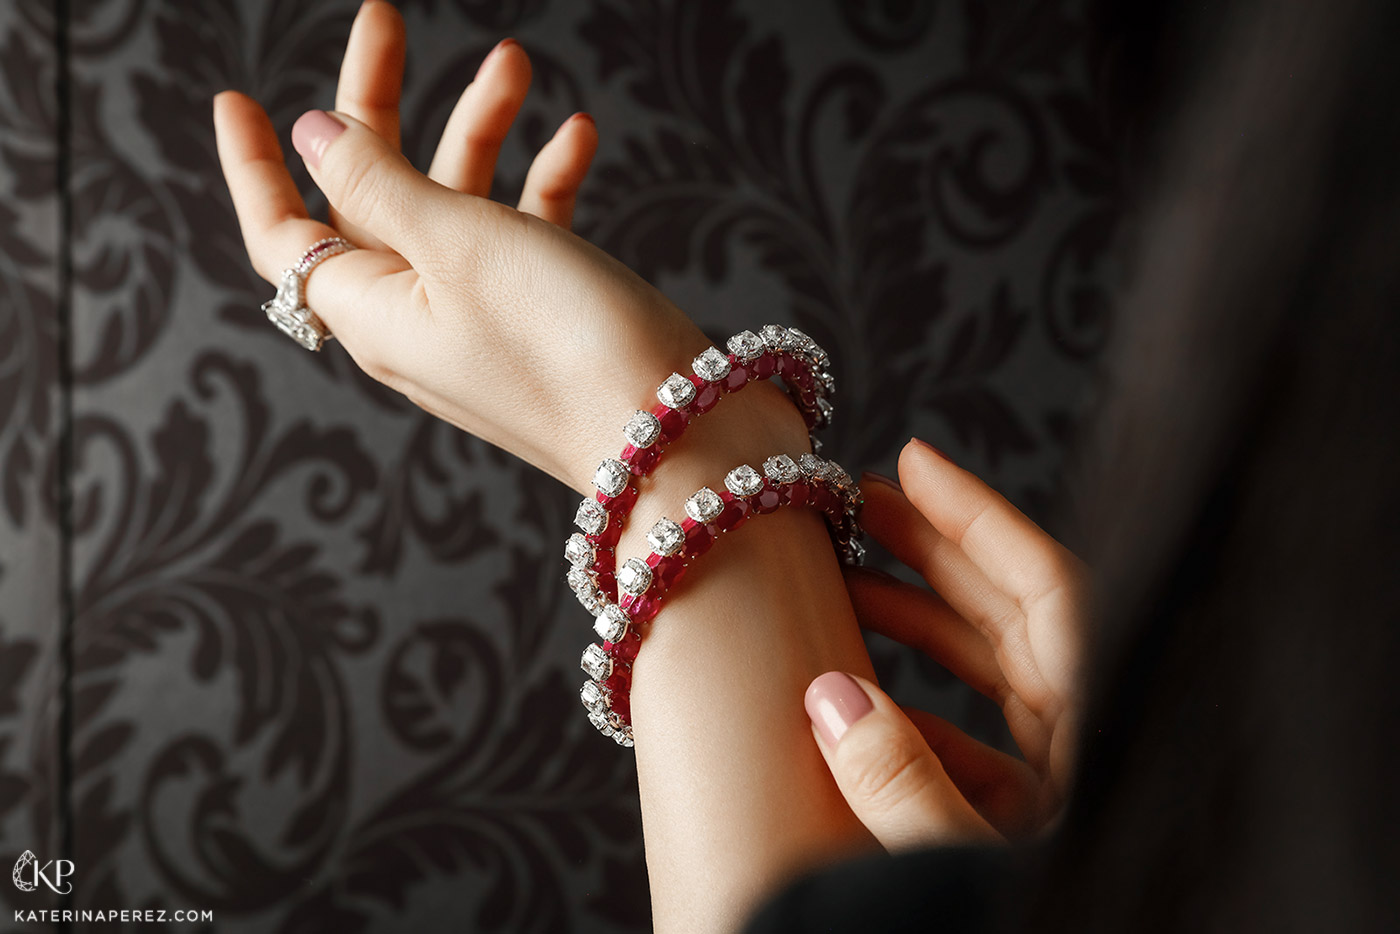 Kamyen bangles in rubies and diamonds, with diamond ring